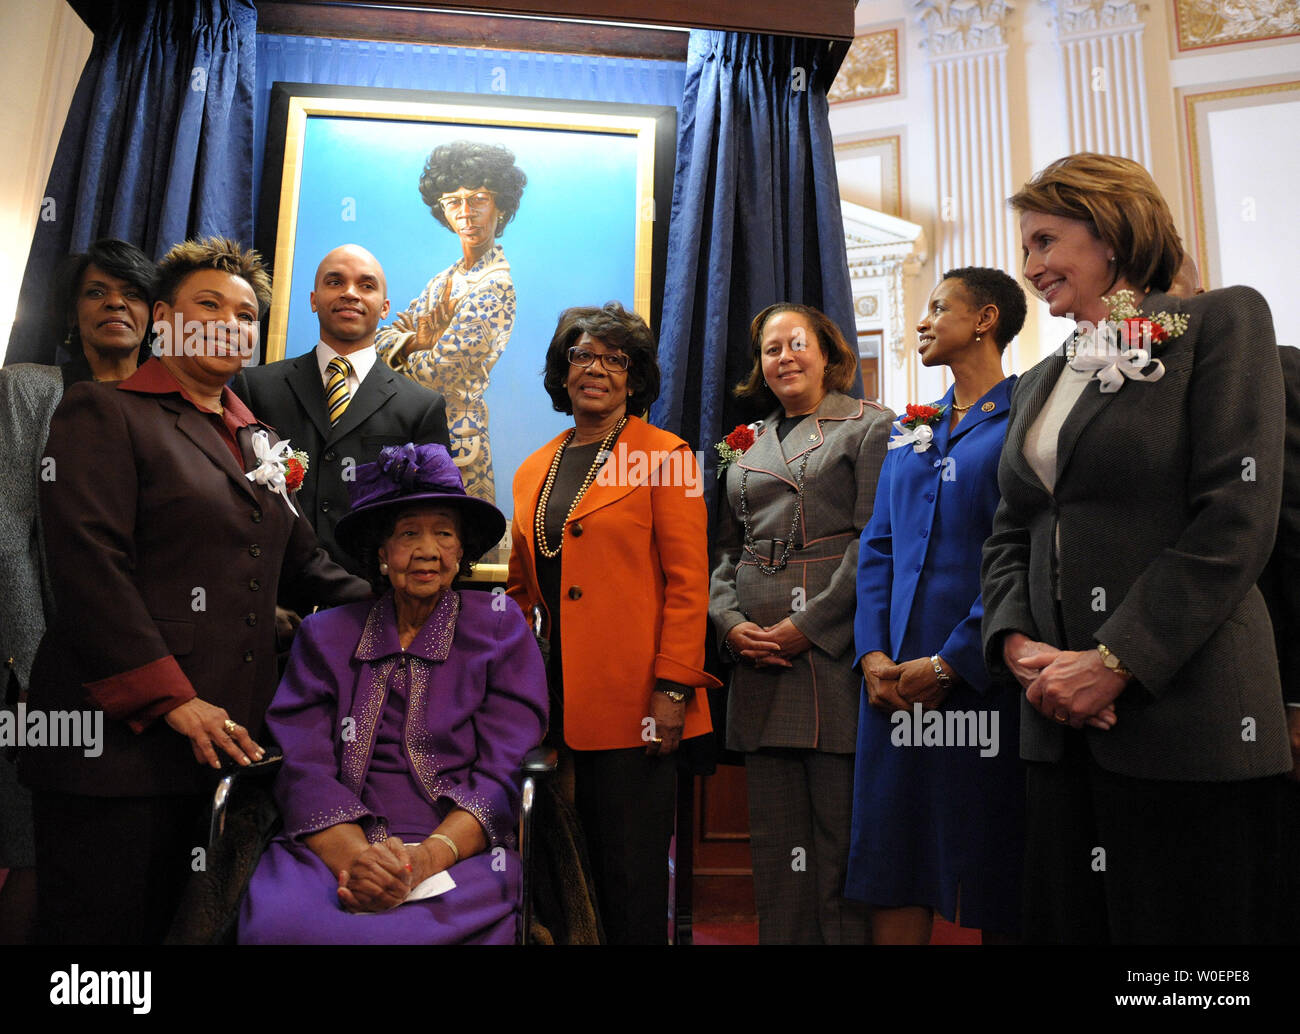 Rep Barbara Lee D Ca L Speaker Of The House Nancy Pelosi D Ca R Rep Maxine Waters D Ca Center And Dorothy Height Seated Joined By Other Dignitaries Participate In A Ceremony Unveiling A